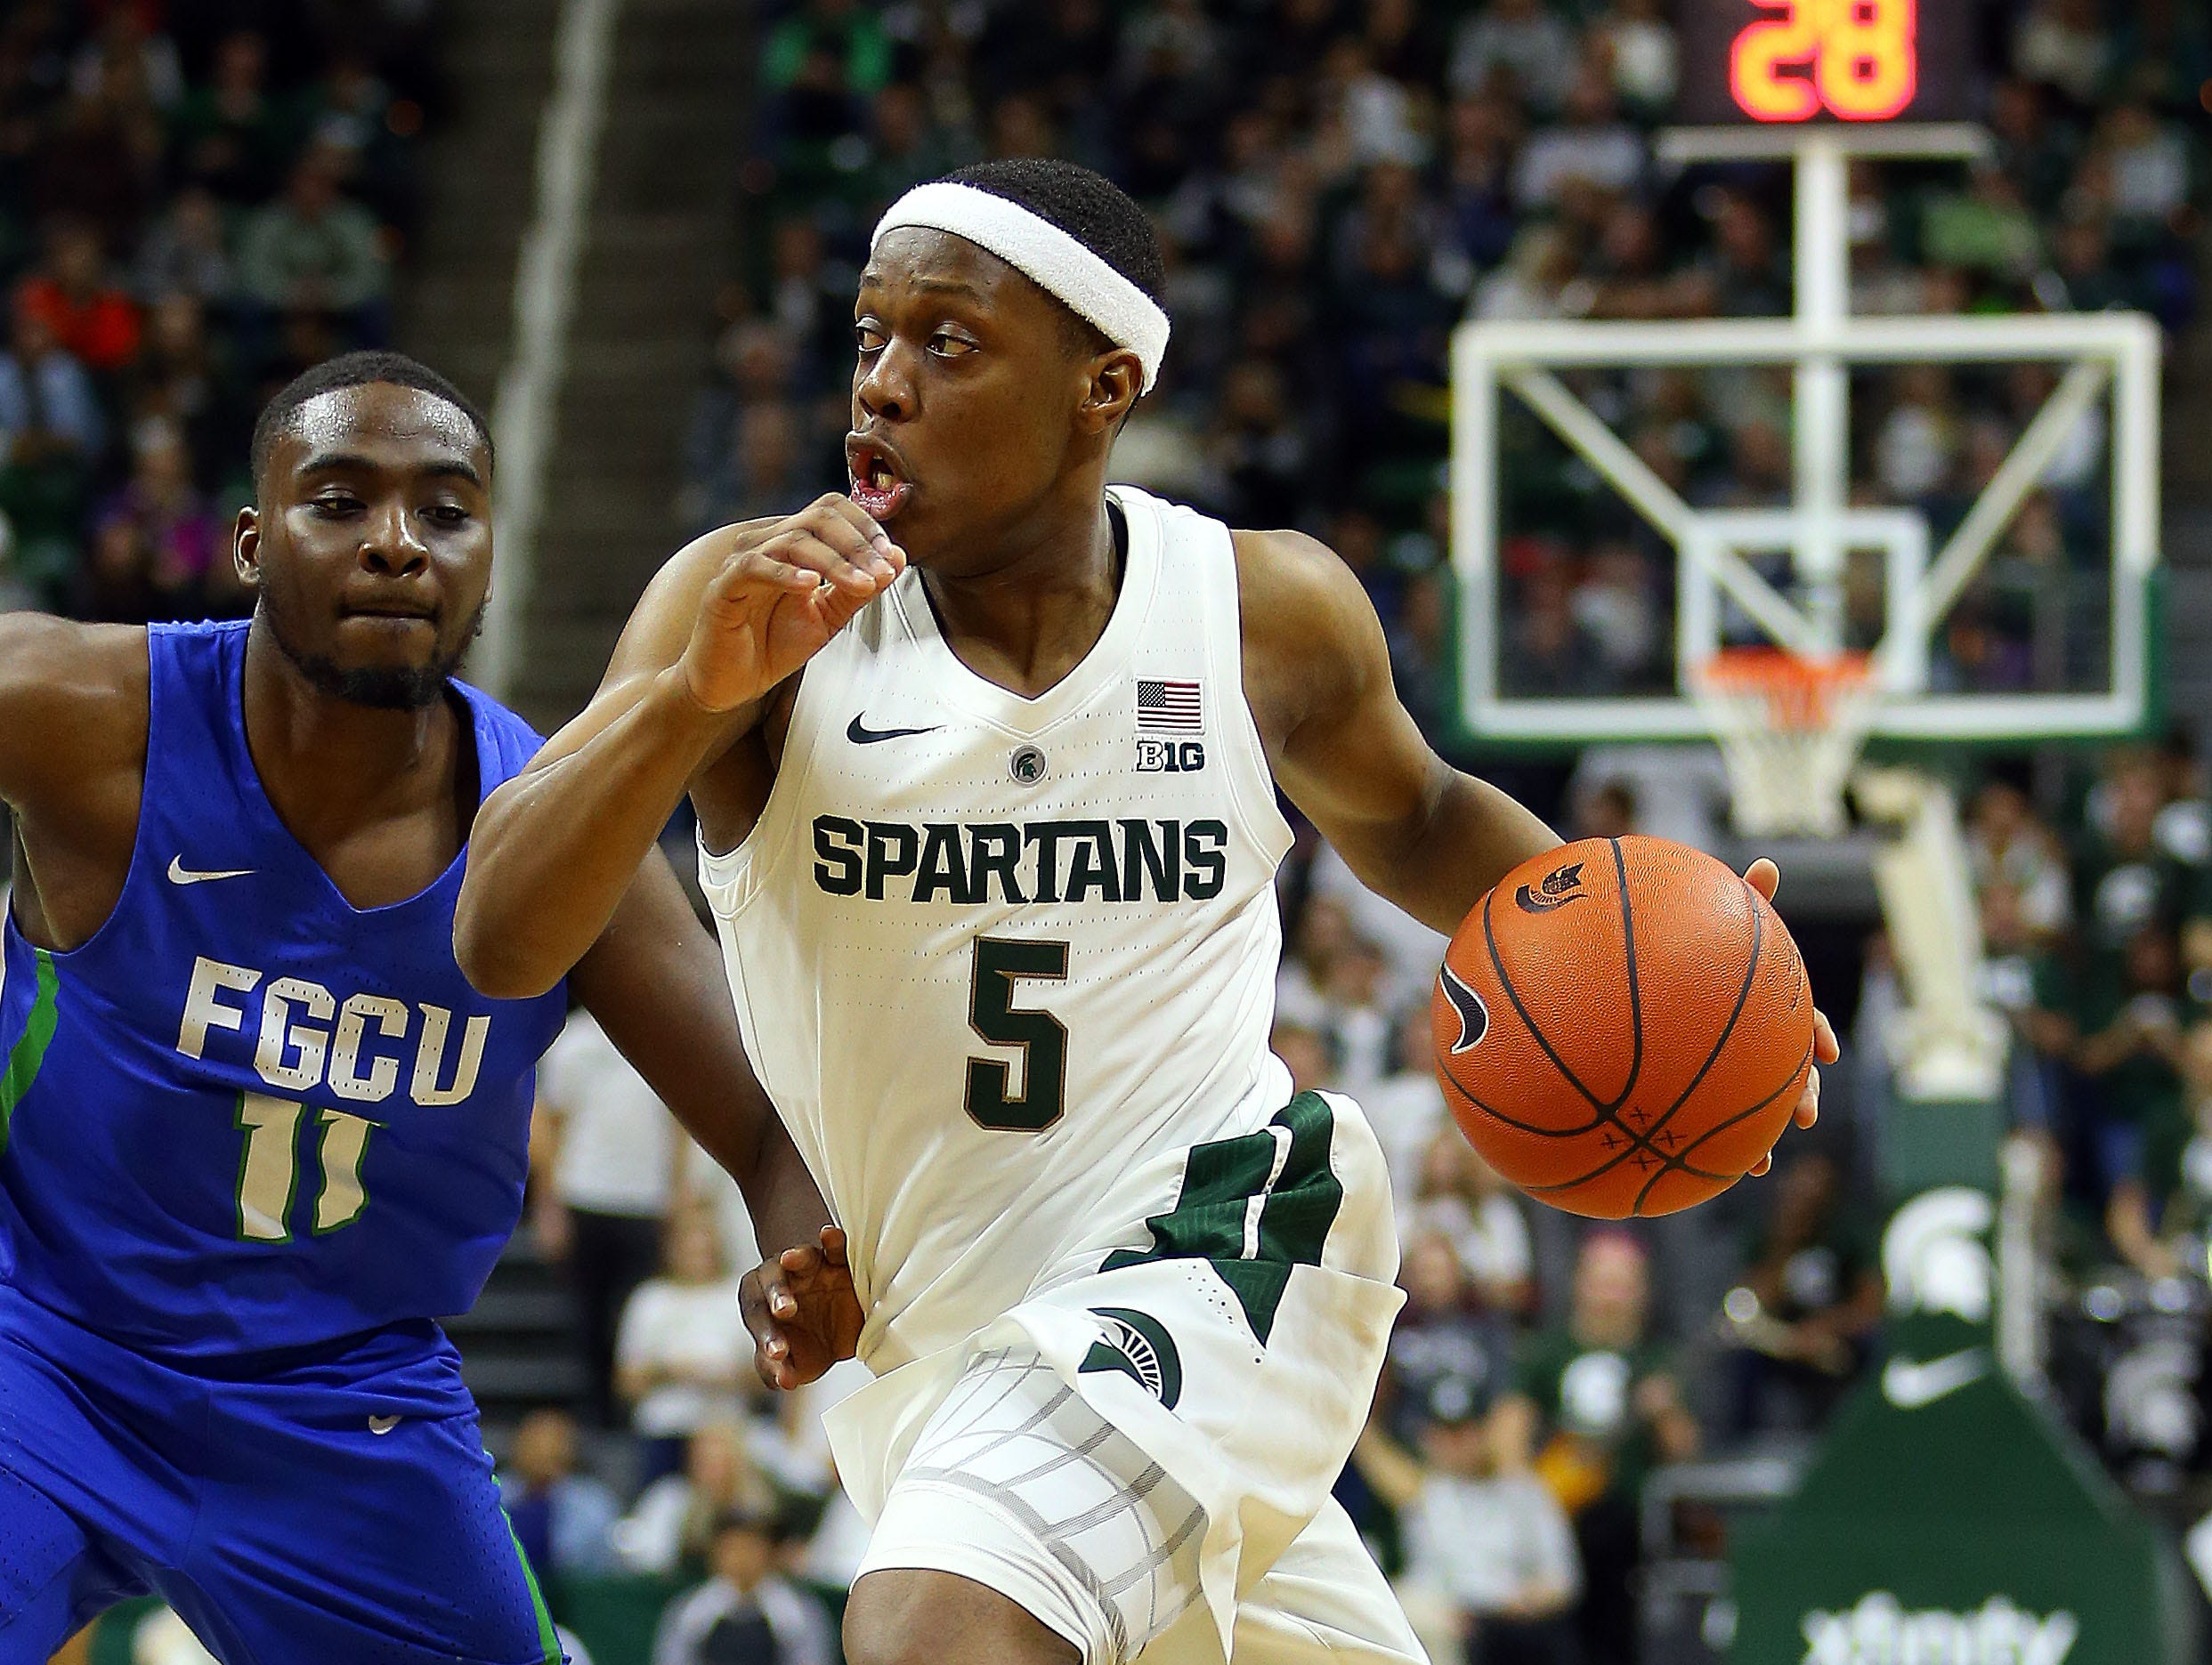 Nov 11, 2018; East Lansing, MI, USA; Michigan State Spartans guard Cassius Winston (5) drives past Florida Gulf Coast Eagles guard Schadrac Casimir (11) during the second half of a game at the Breslin Center. Mandatory Credit: Mike Carter-USA TODAY Sports